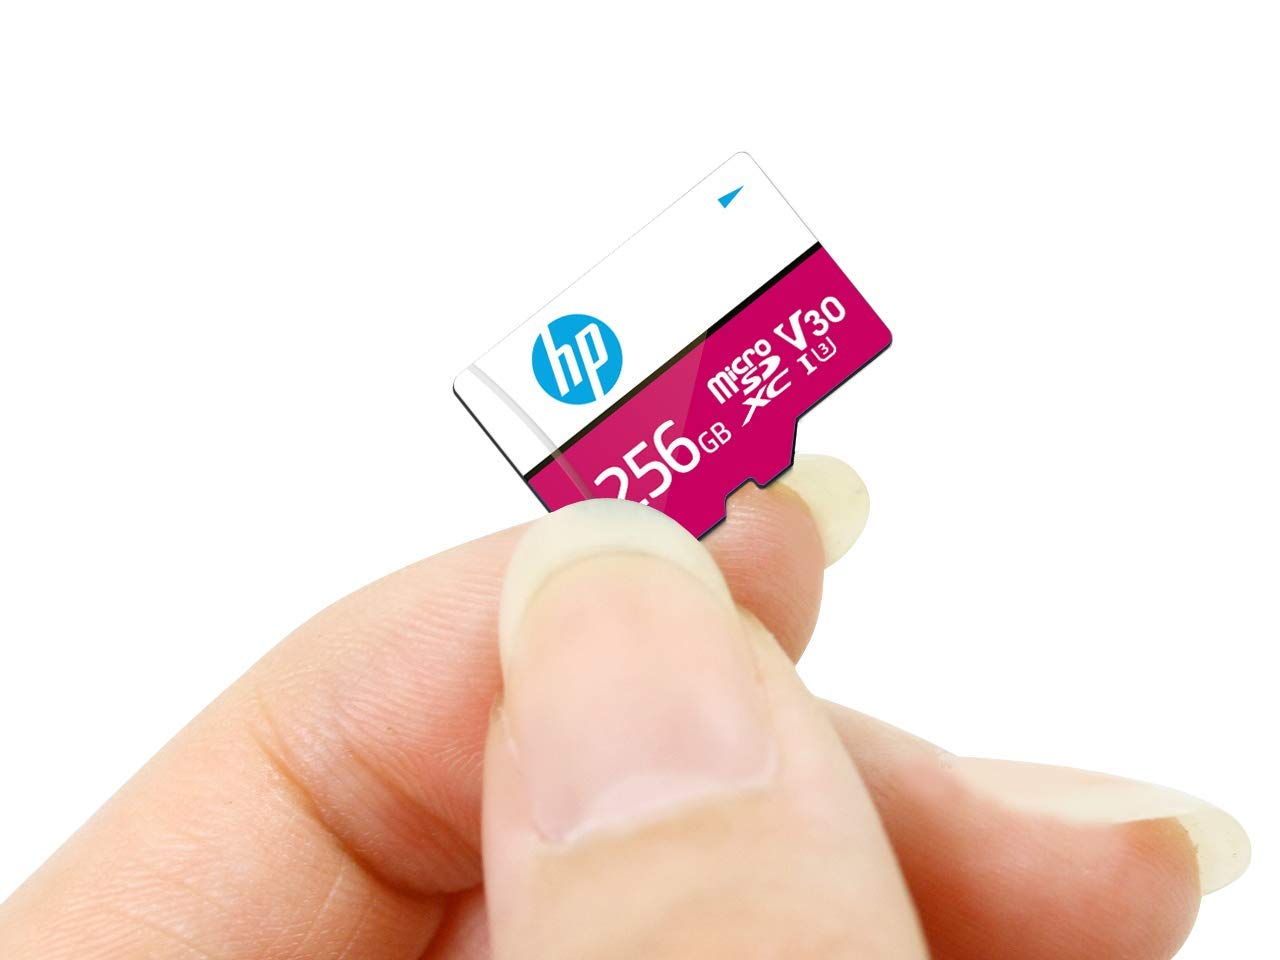 HP Micro SD Card 256GB with Adapter U3 V30 (Pink) (Write Speed 85MB/s & Read Speed 100 MB/s Records 4K UHD and Fill HD Video)